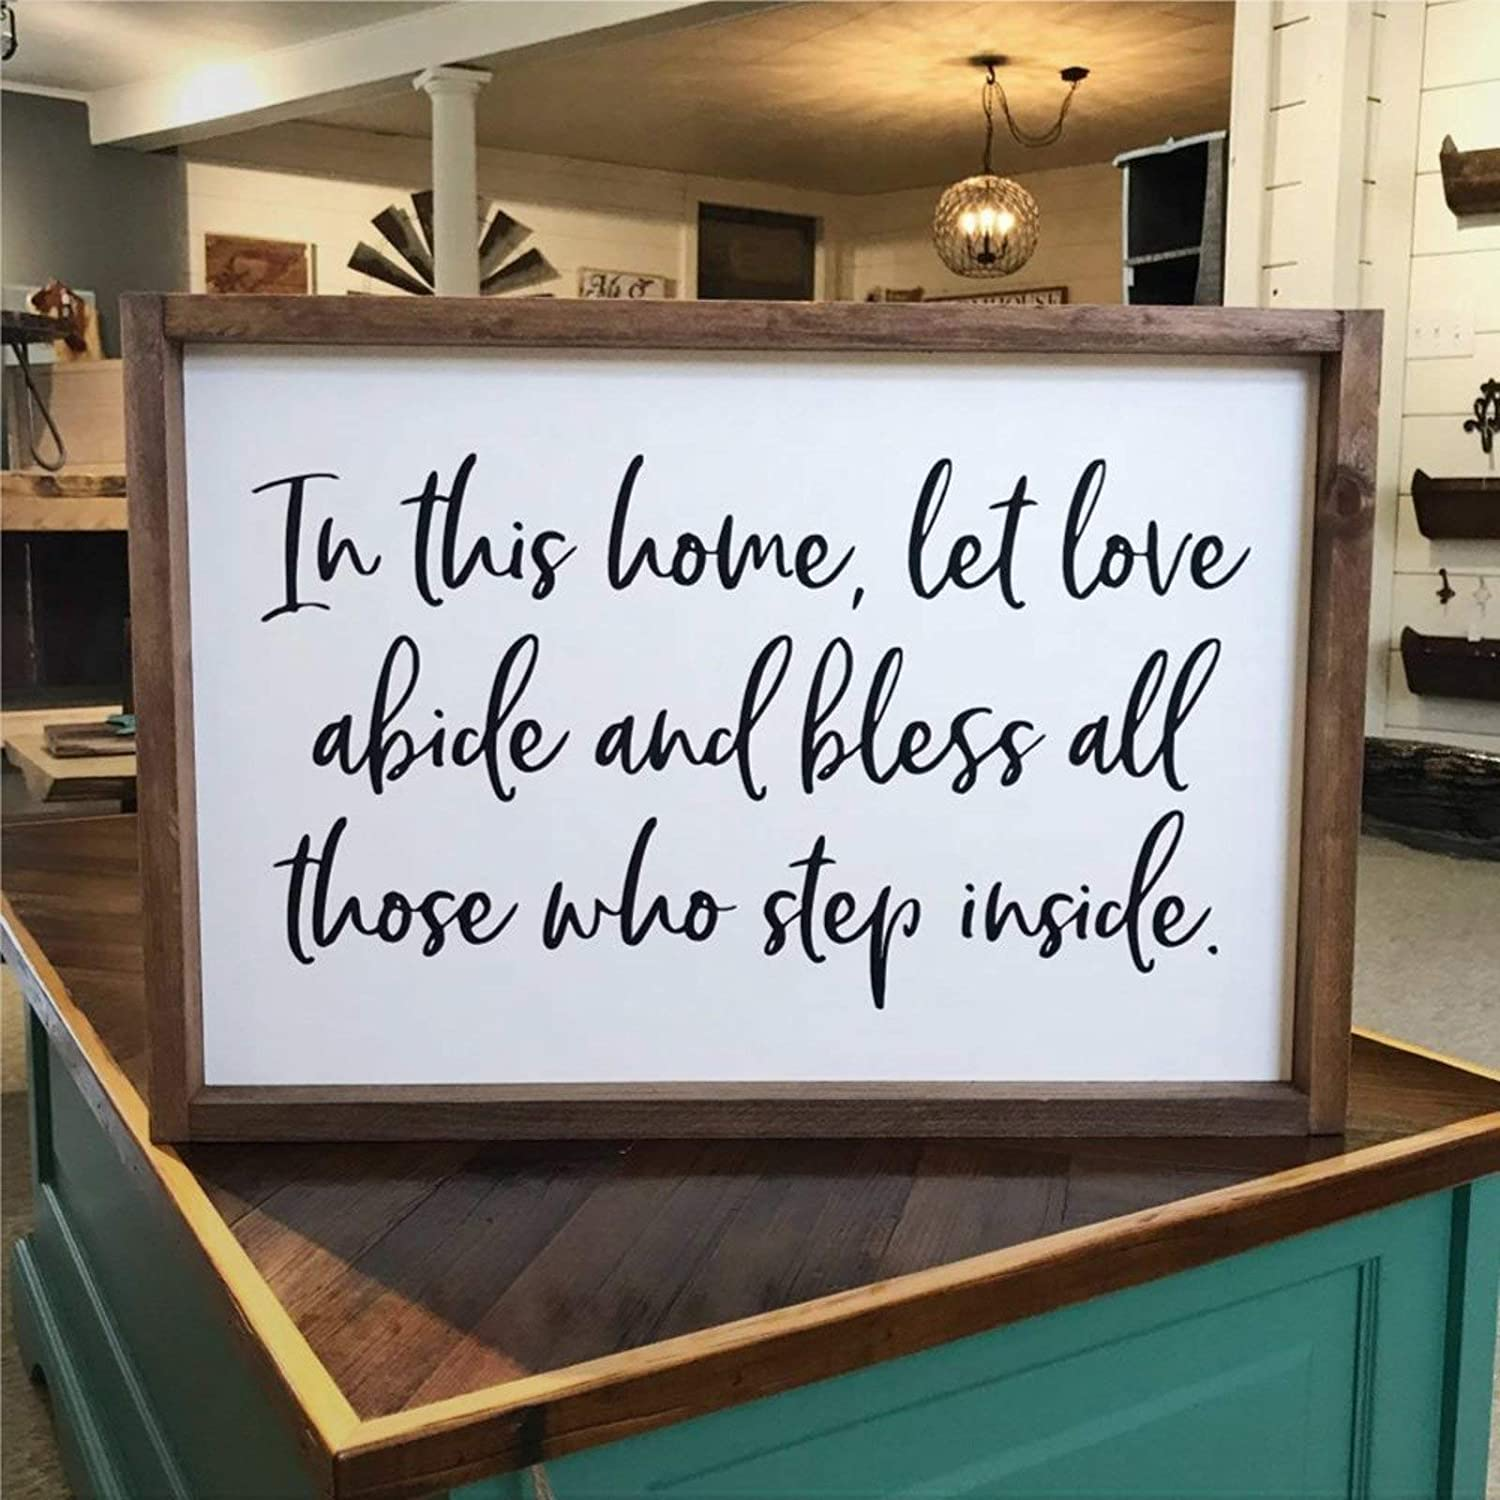 BYRON HOYLE in This Home Let Love Abide Framed Wood Sign, Wooden Wall Hanging Art, Inspirational Farmhouse Wall Plaque, Rustic Home Decor for Nursery, Porch, Gallery Wall, Housewarming